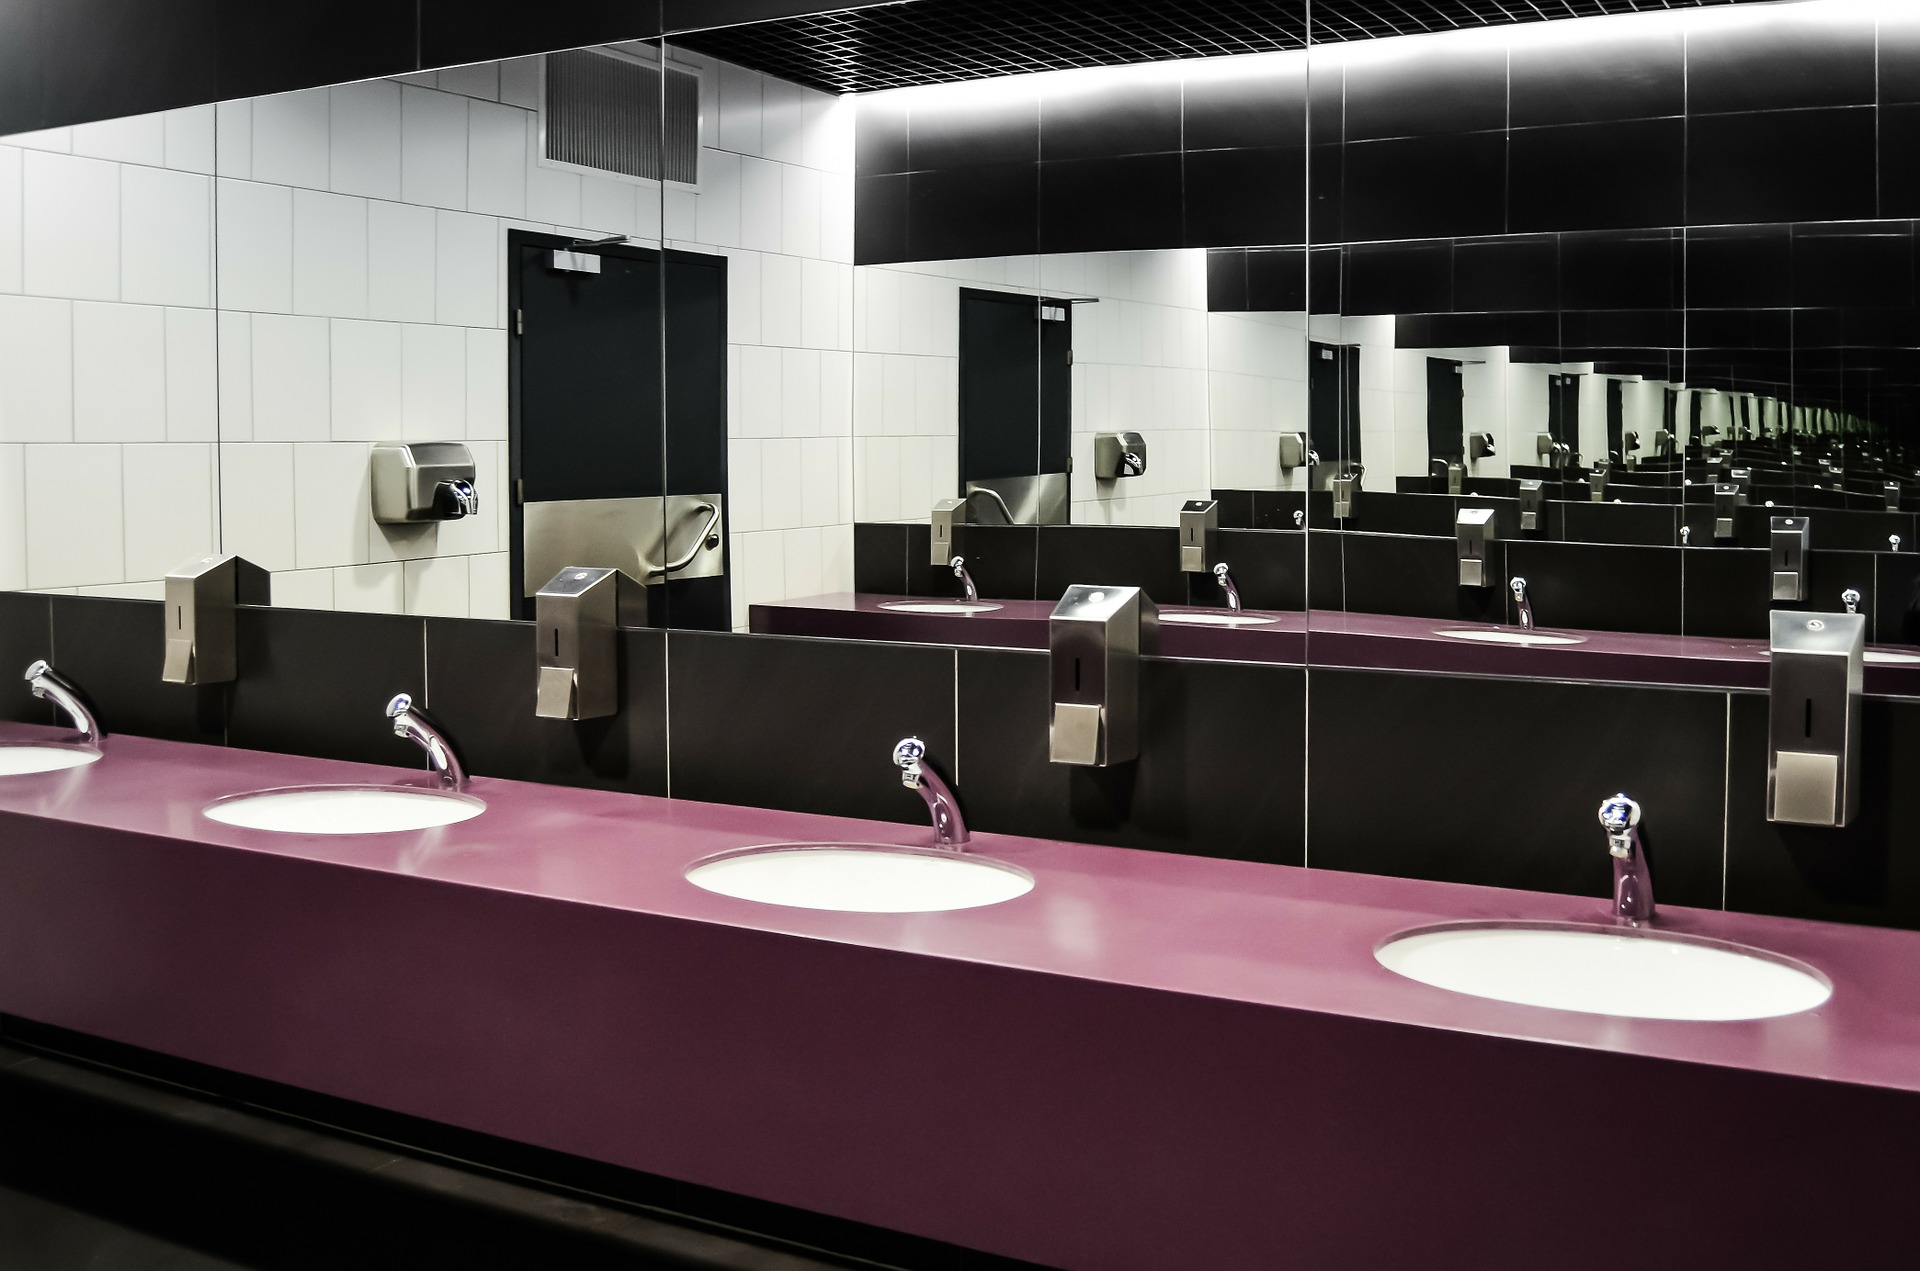 Picture of bathroom sinks.